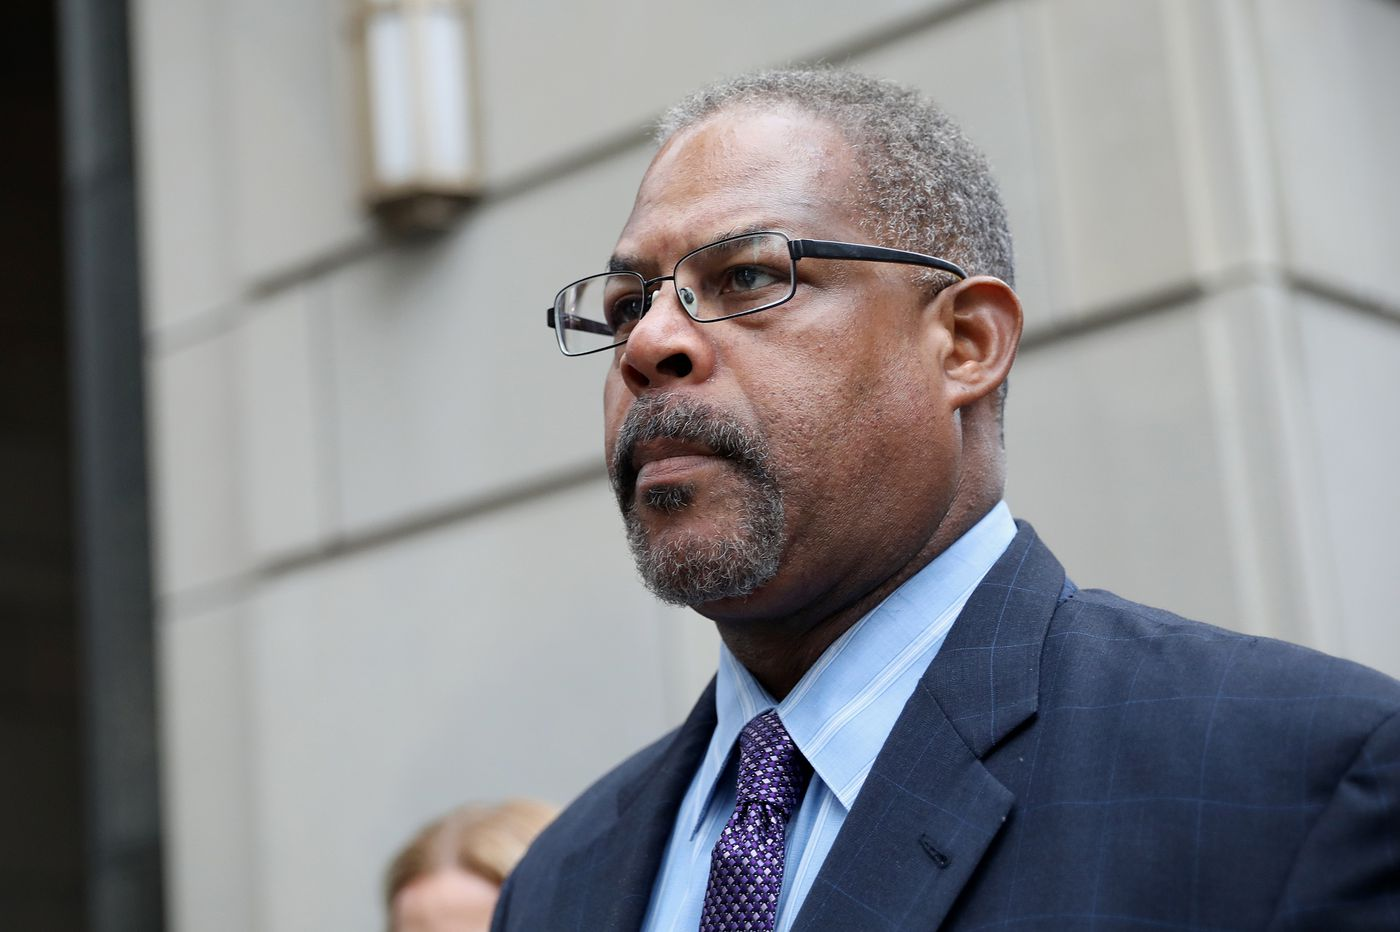 Former Philadelphia police inspector held for allegedly sexually assaulting female cops